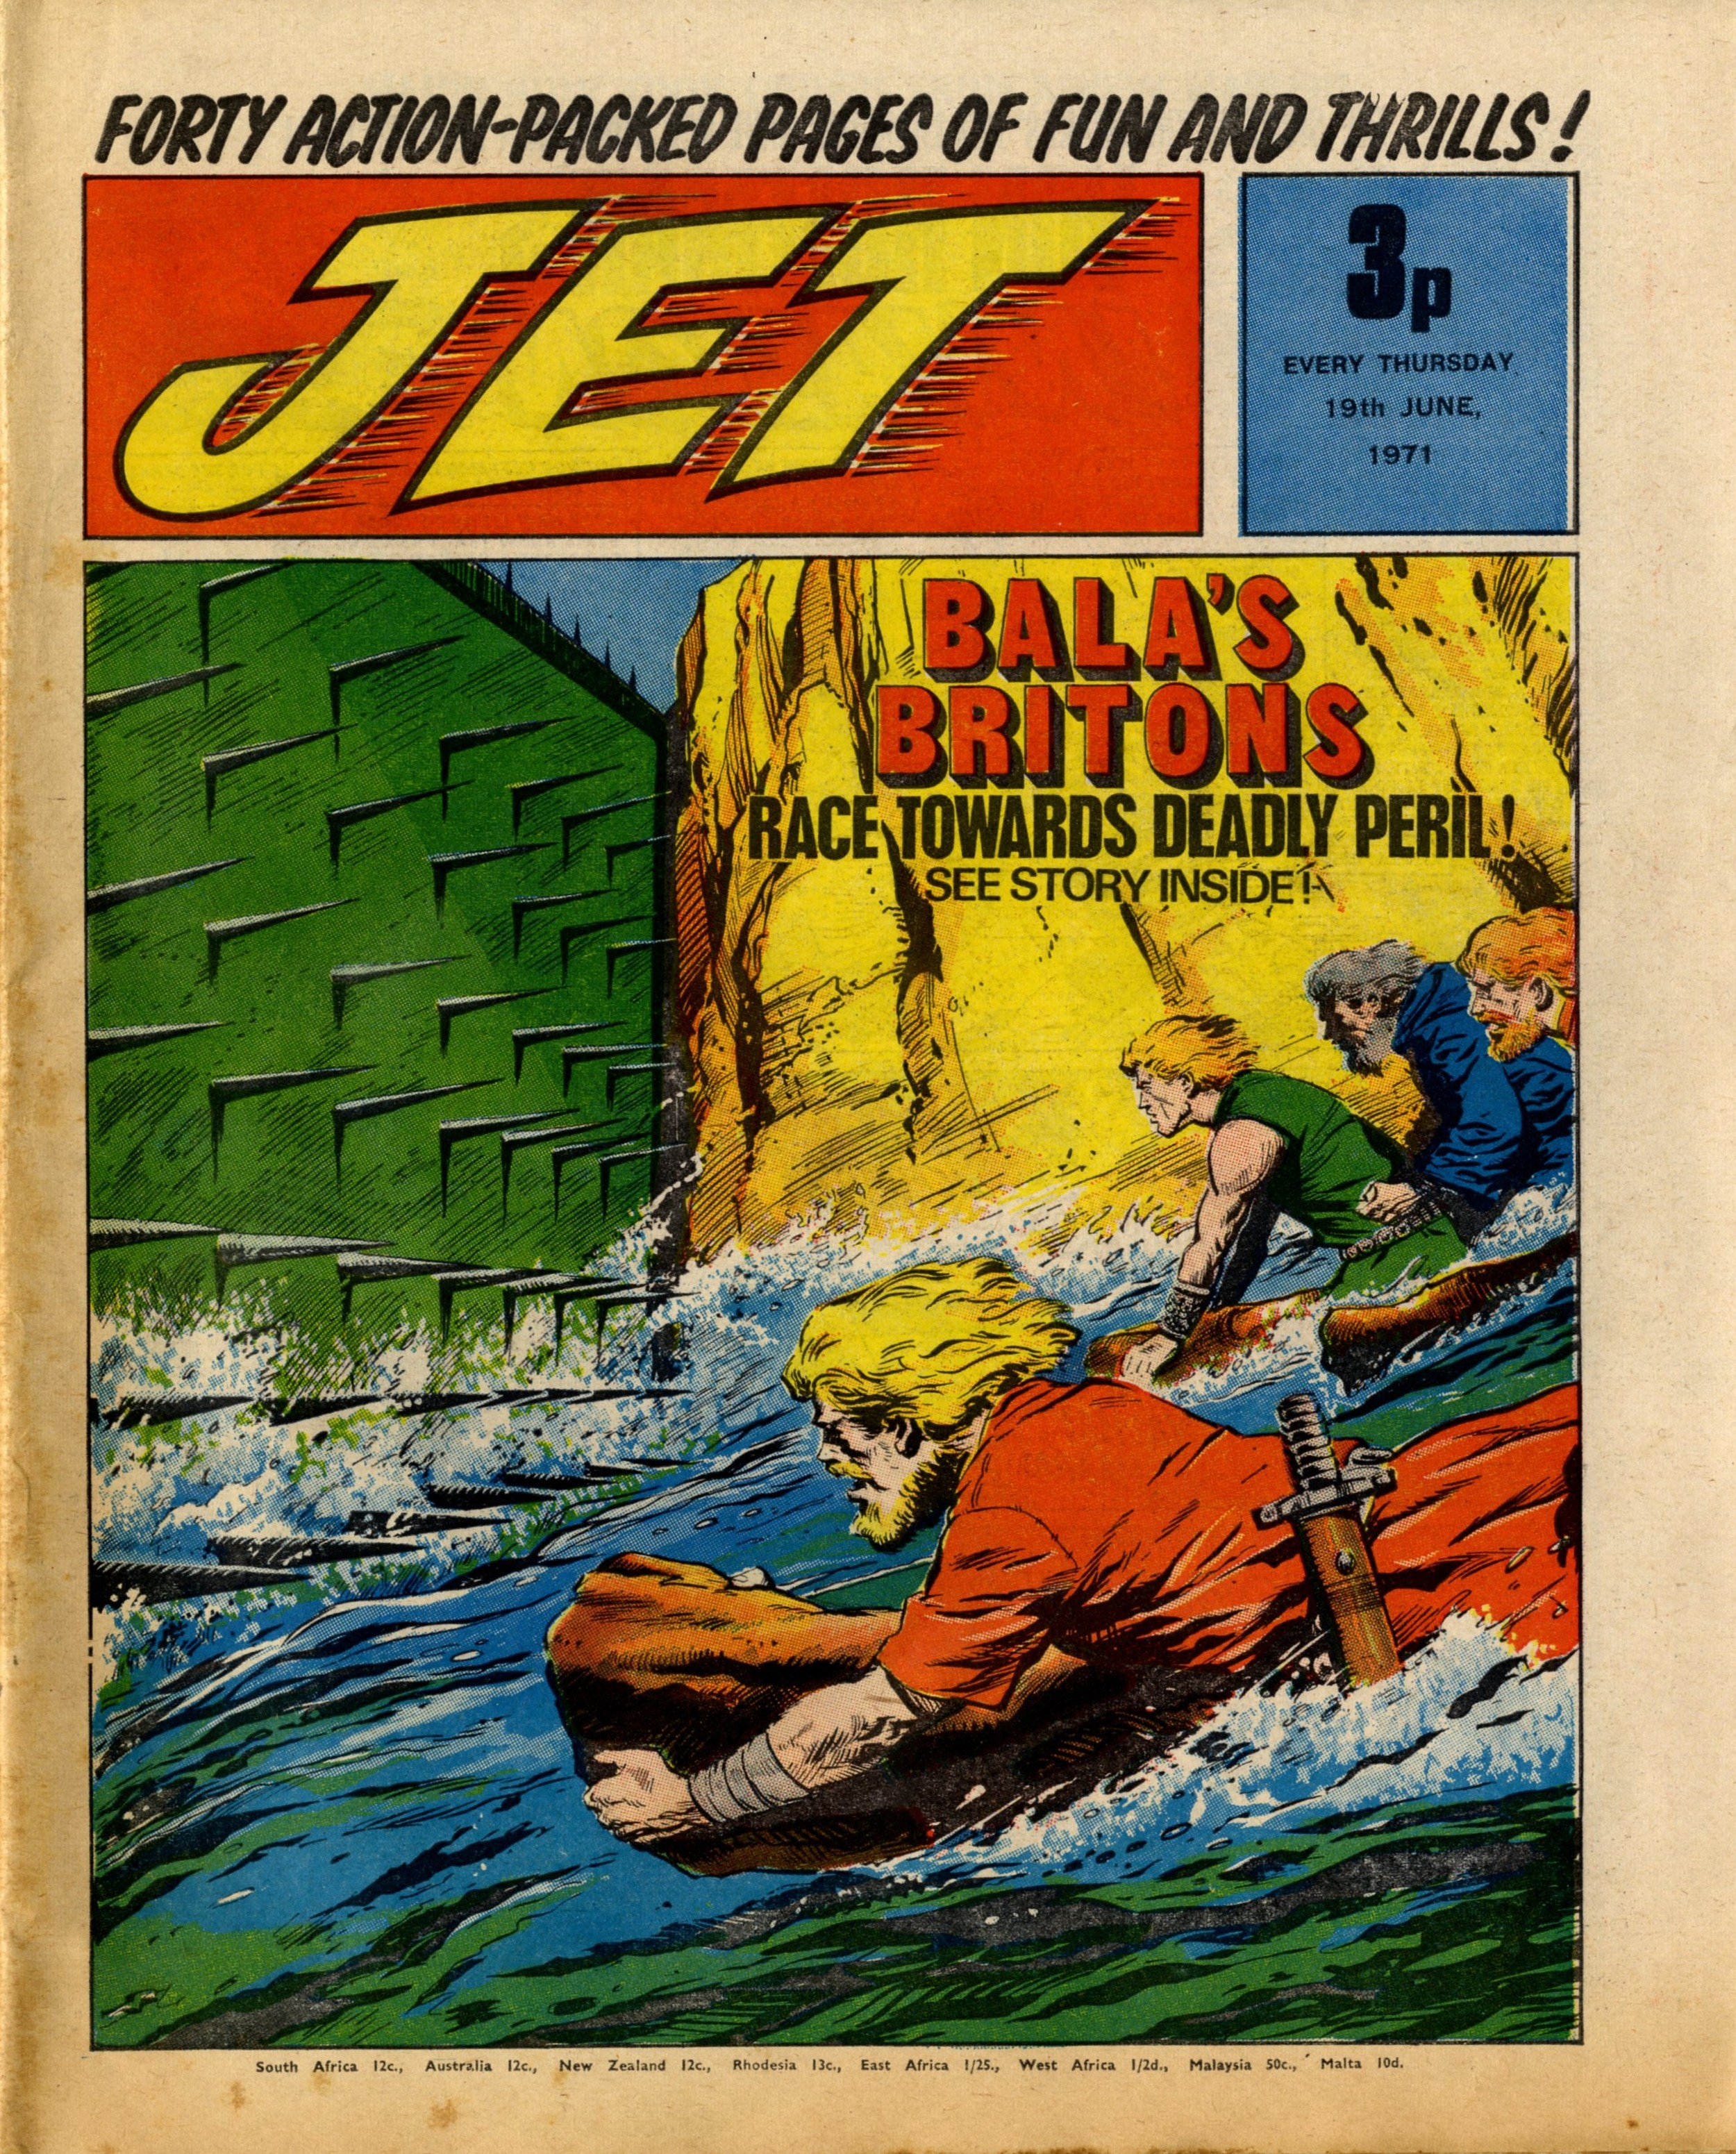 On this day, 19 June 1971: Jet — GREAT NEWS FOR ALL READERS ...